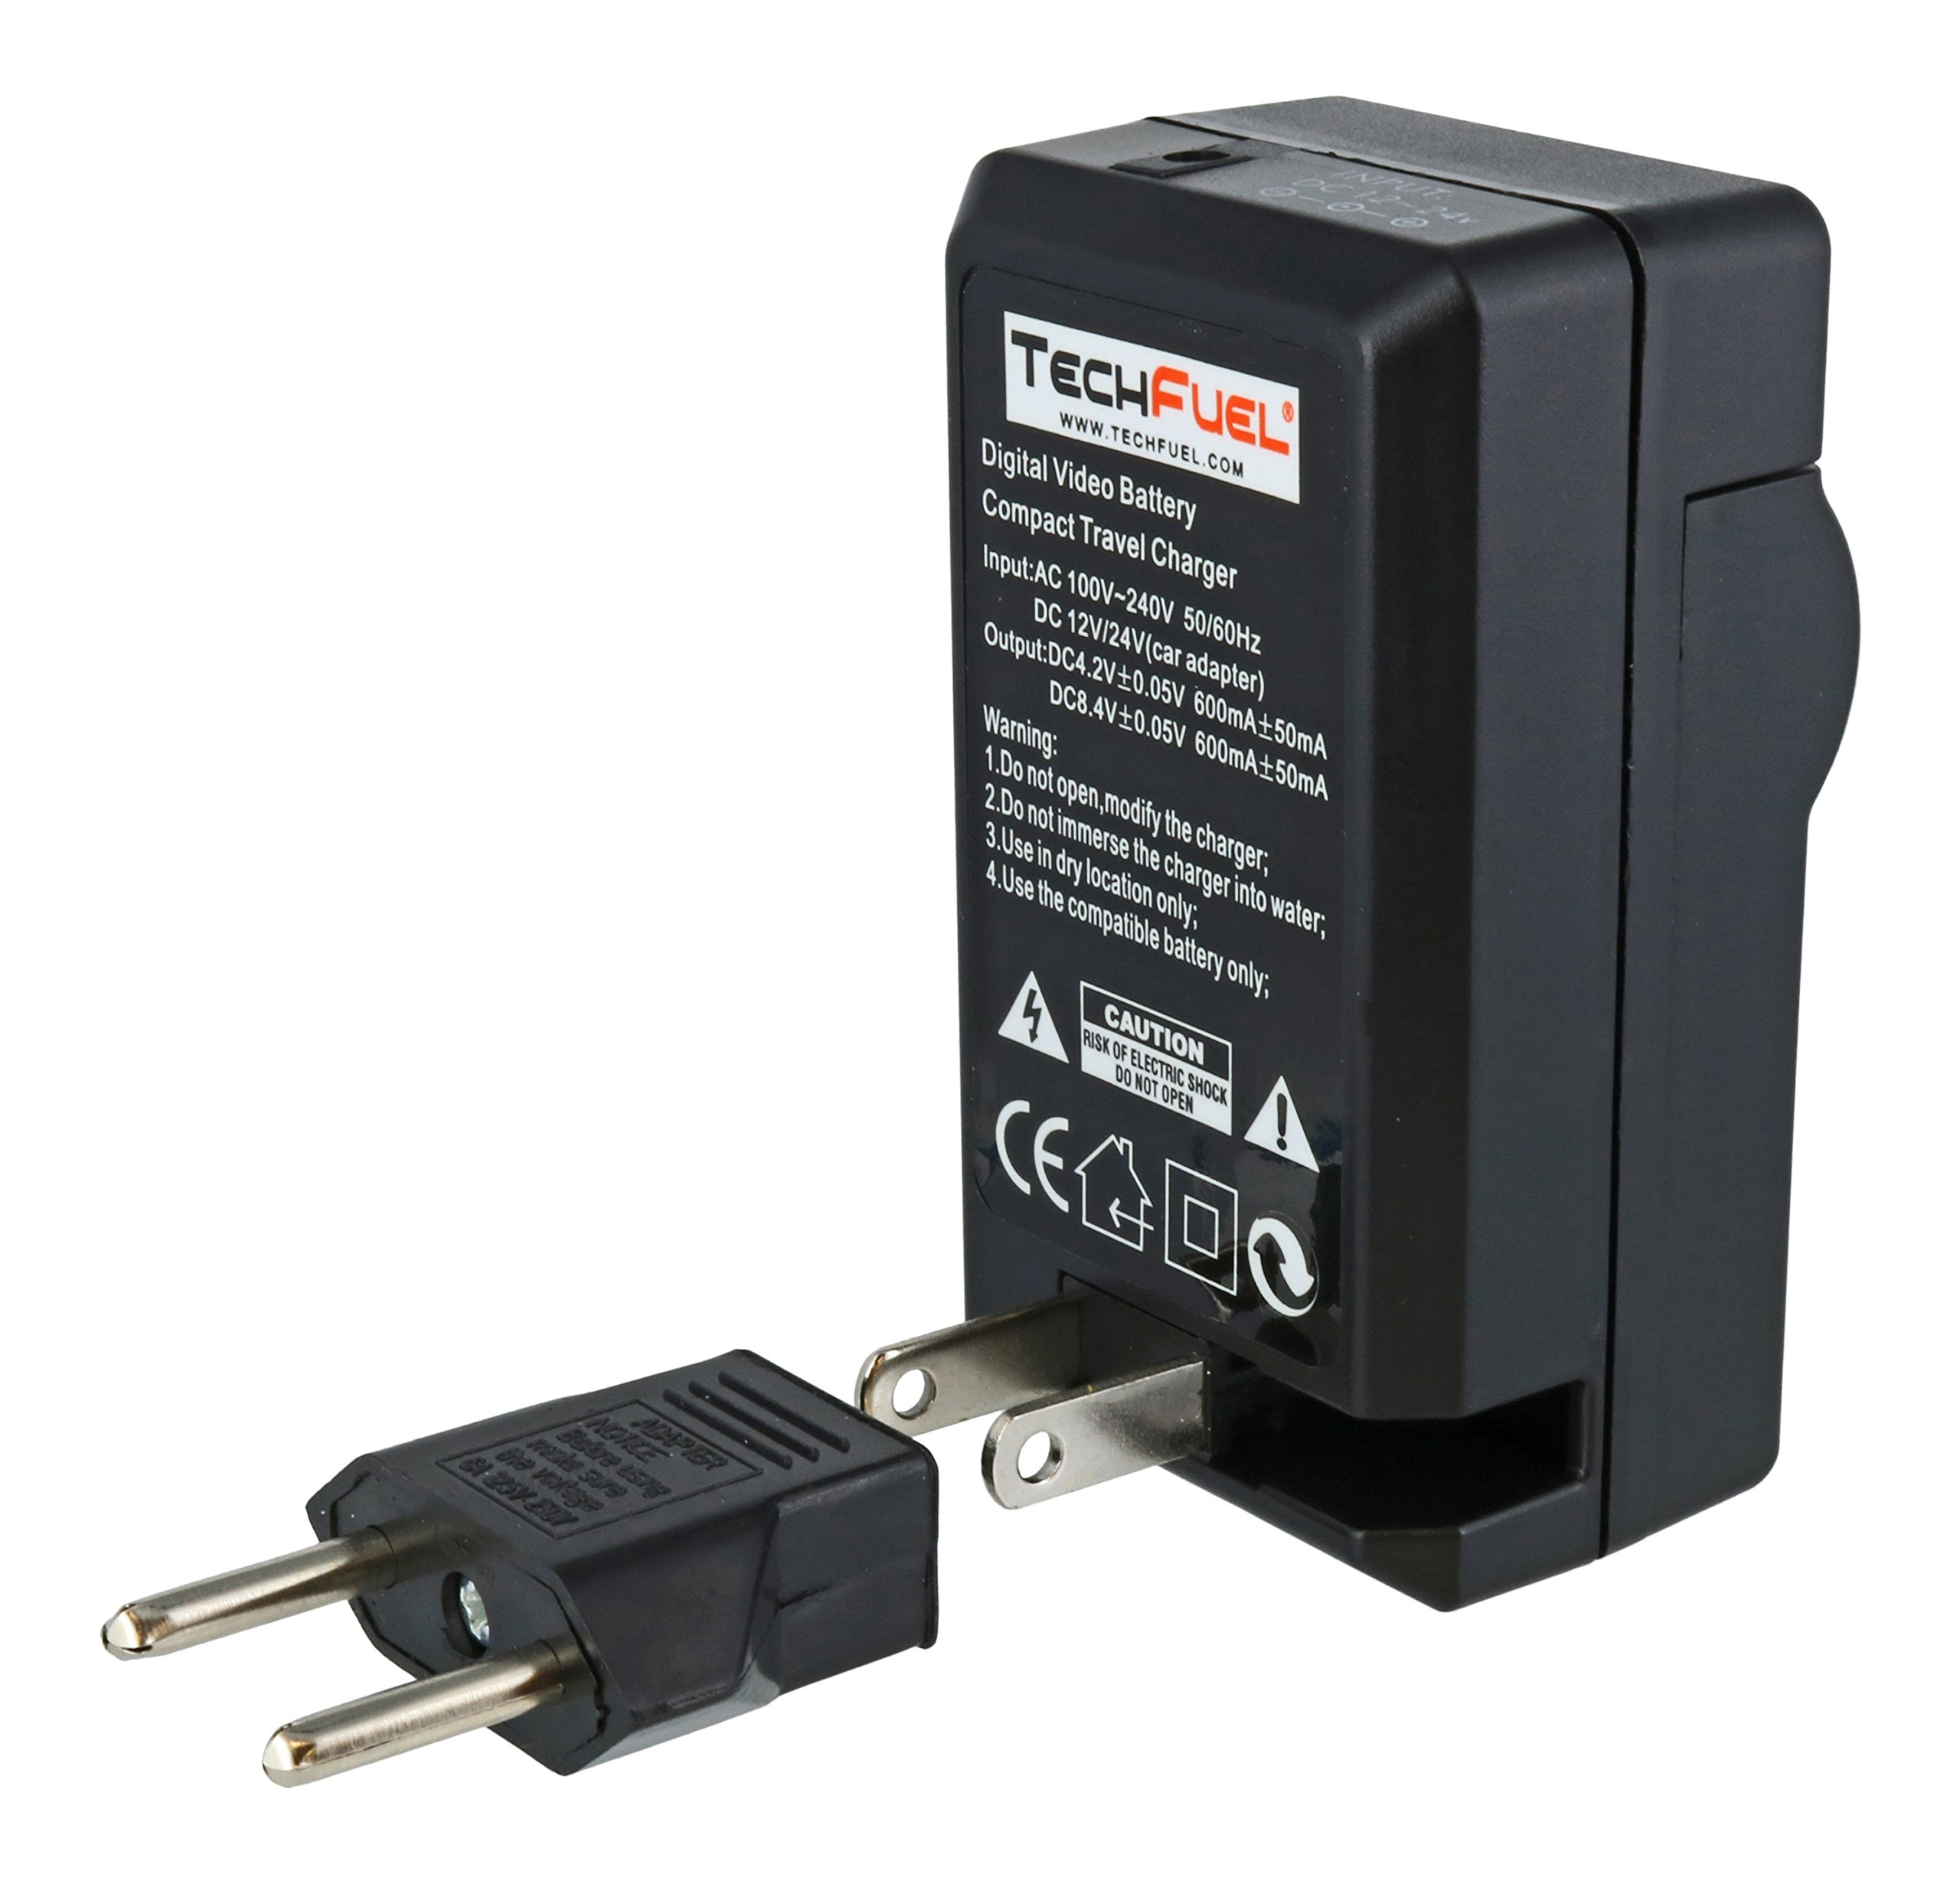 TechFuel Battery Charger Kit for Panasonic HDC-HS9 Camcorder - For Home, Car and Travel Use by TechFuel (Image #5)